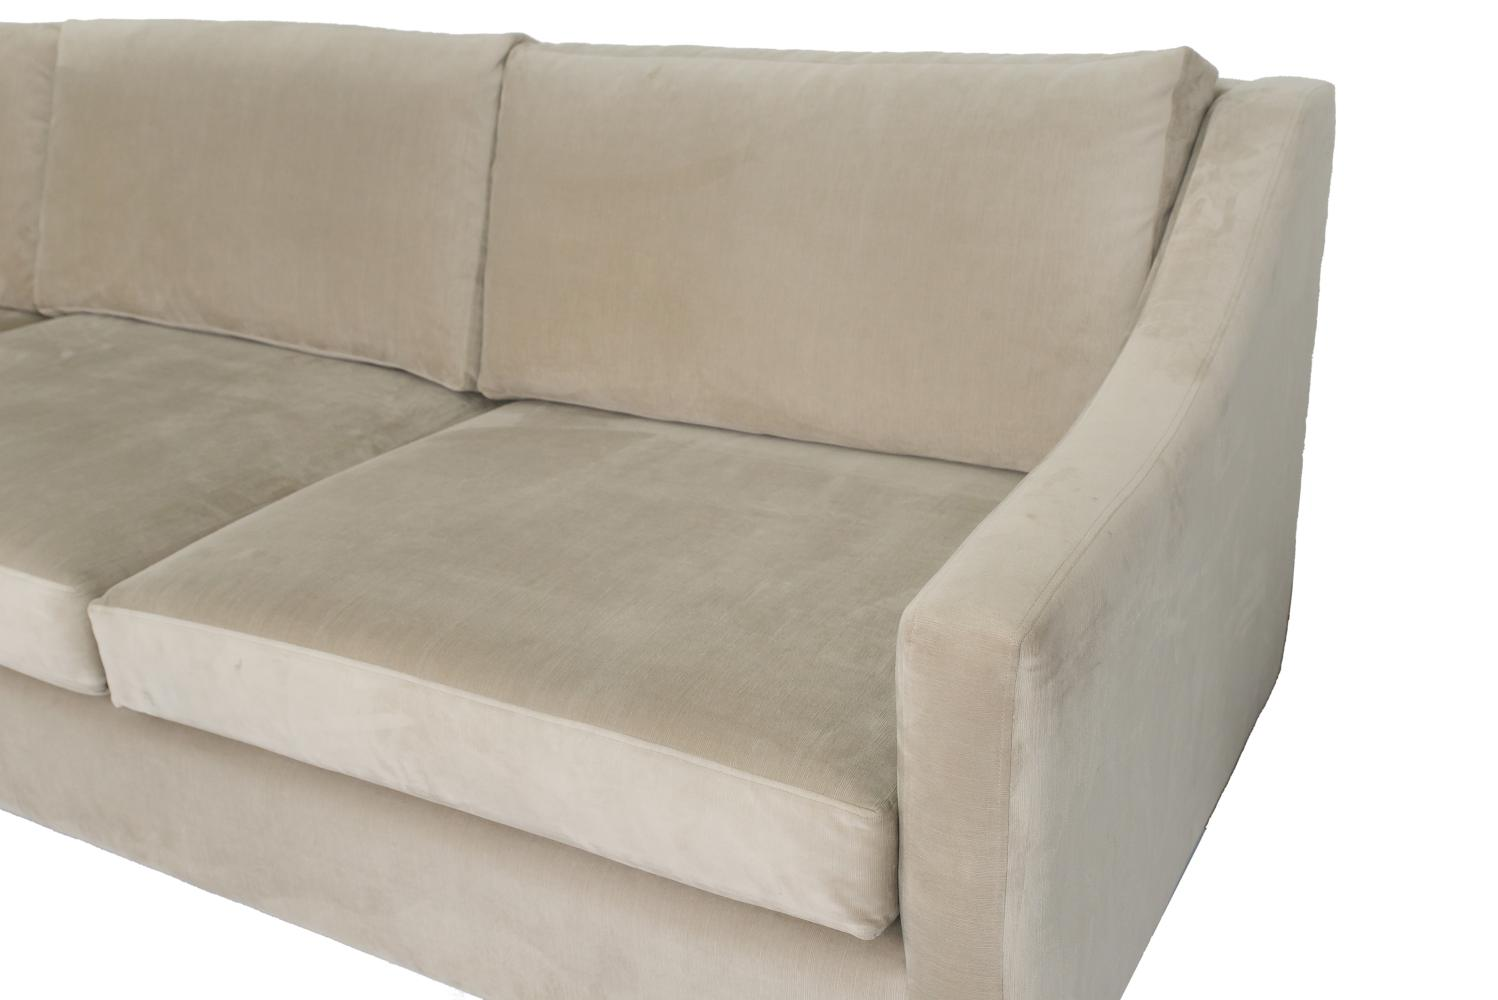 Aspen Daybed Sofa Lounge By Design